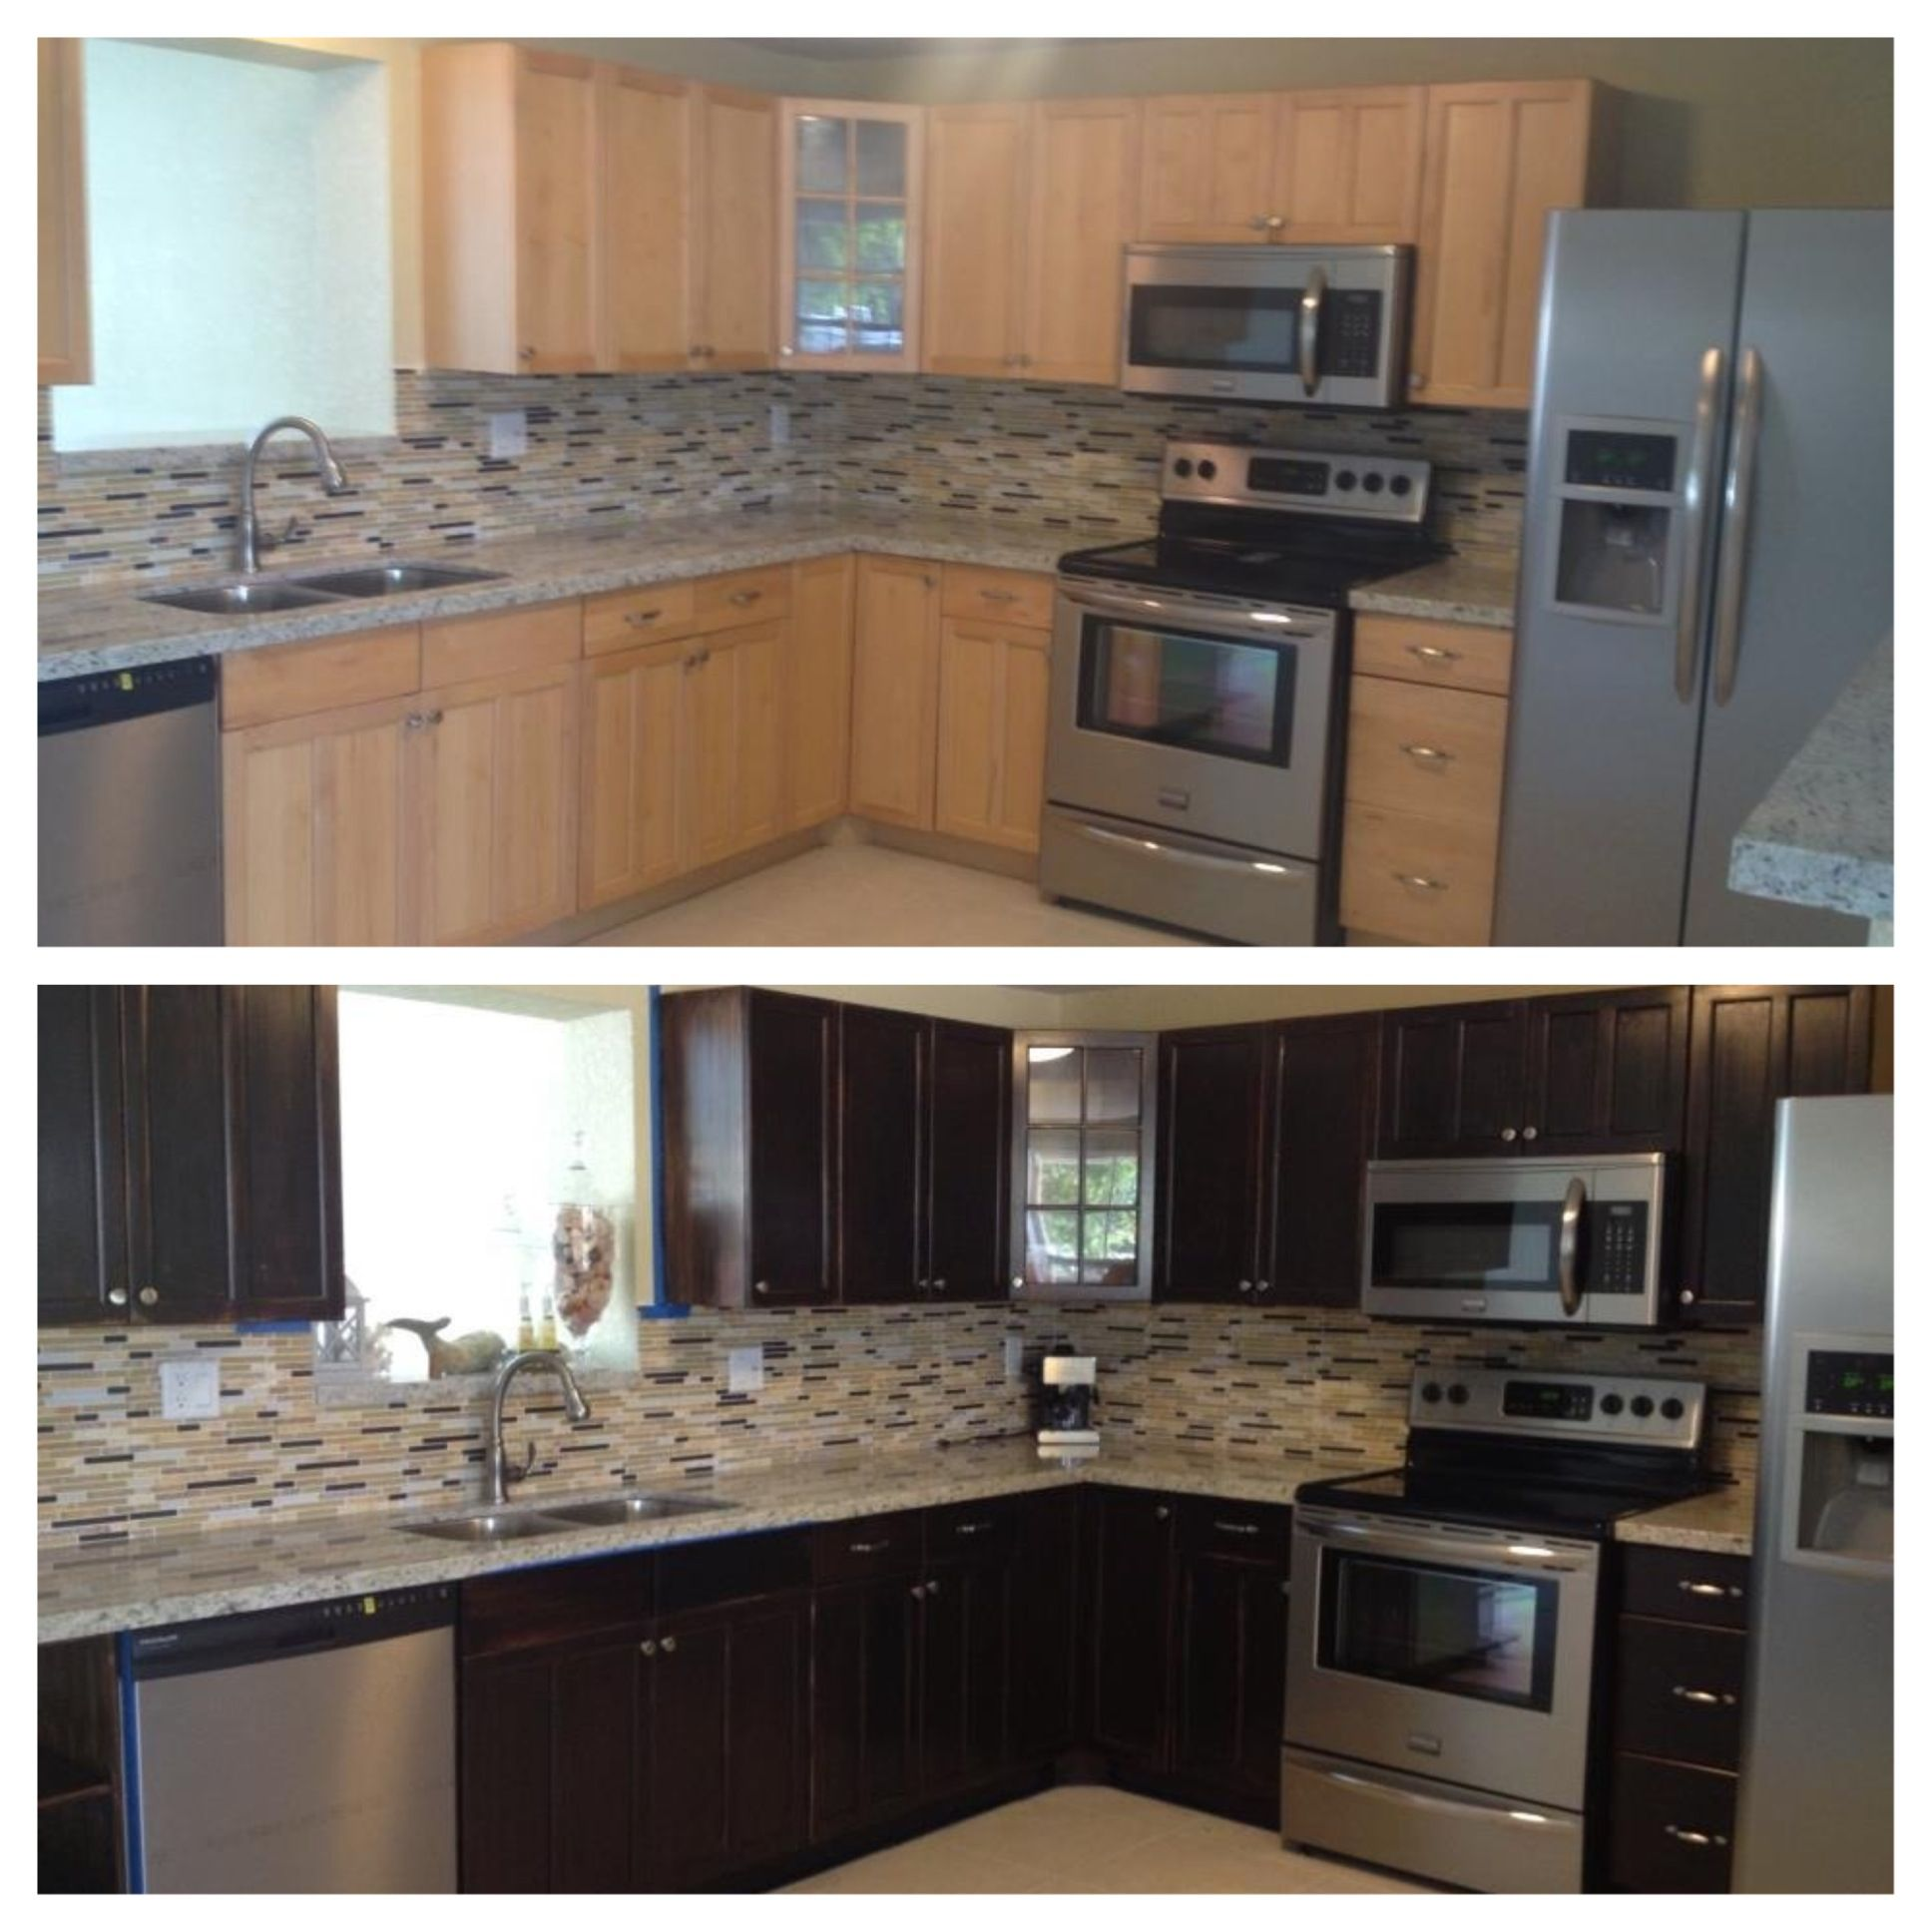 My Kitchen Before After Using Wood Stain Stained Kitchen Cabinets Staining Cabinets Stain Kitchen Cabinets Dark